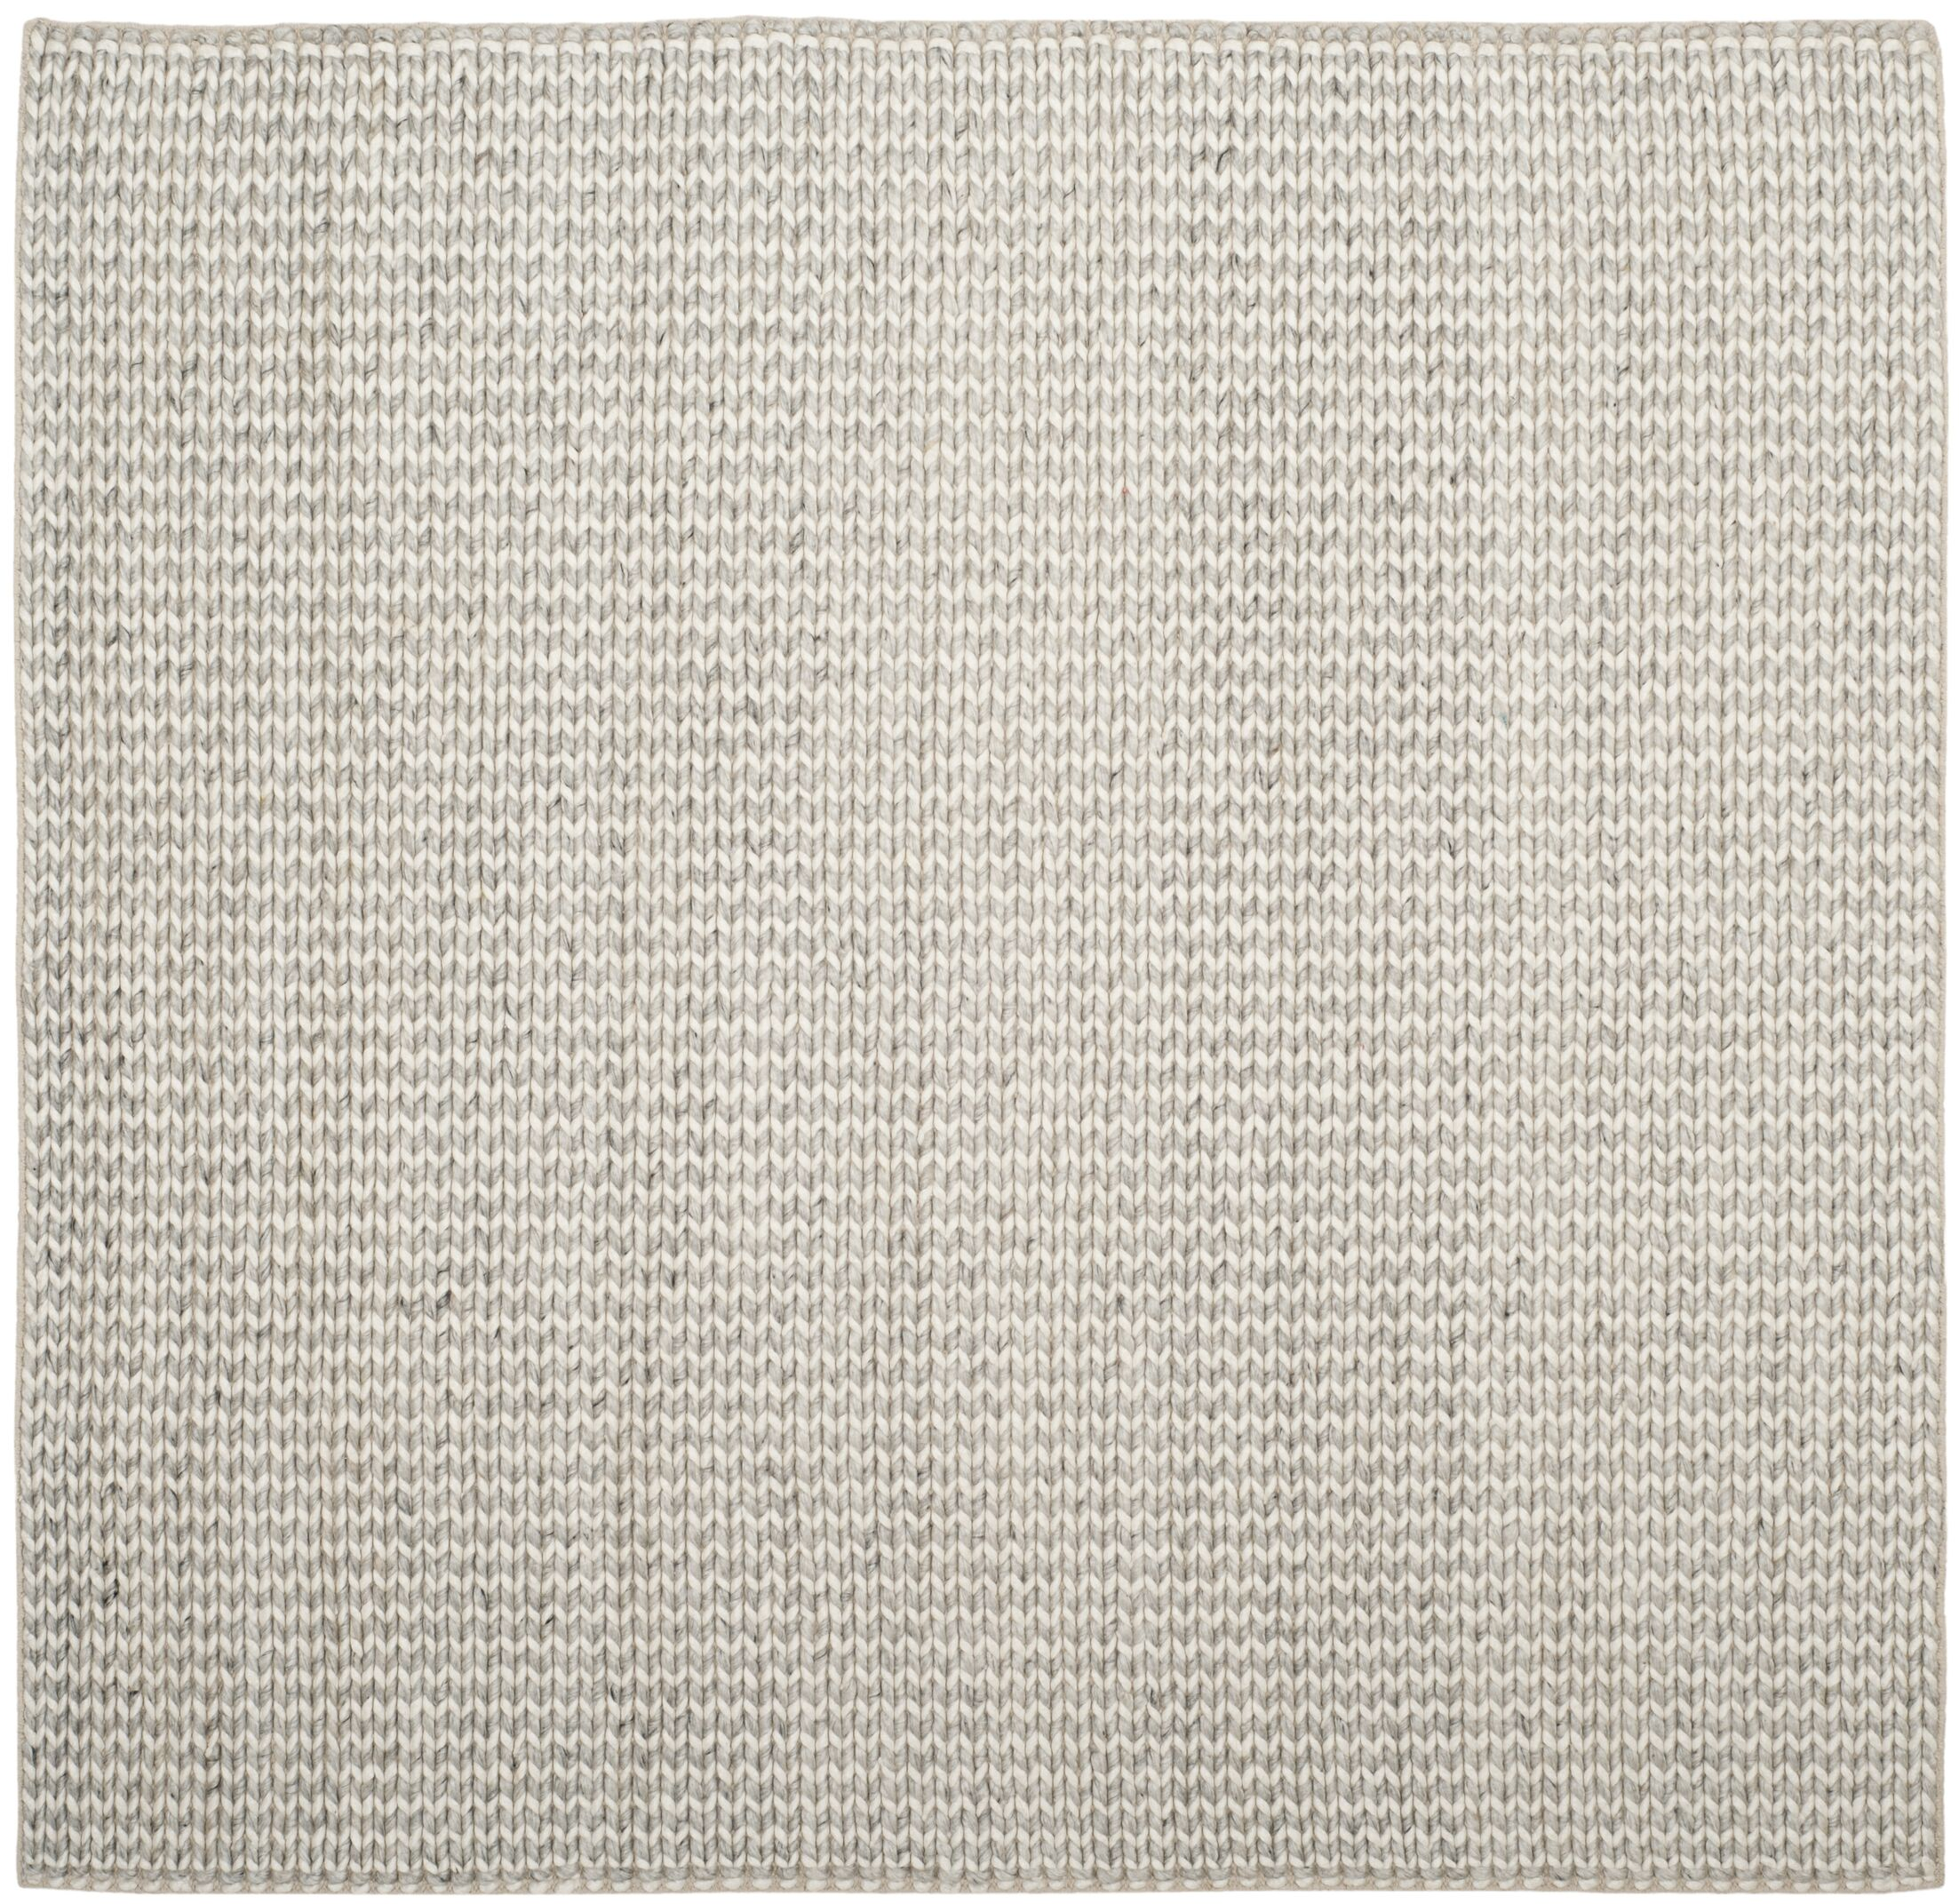 Newry Hand-Tufted Ivory/Silver Area Rug Rug Size: Square 6'